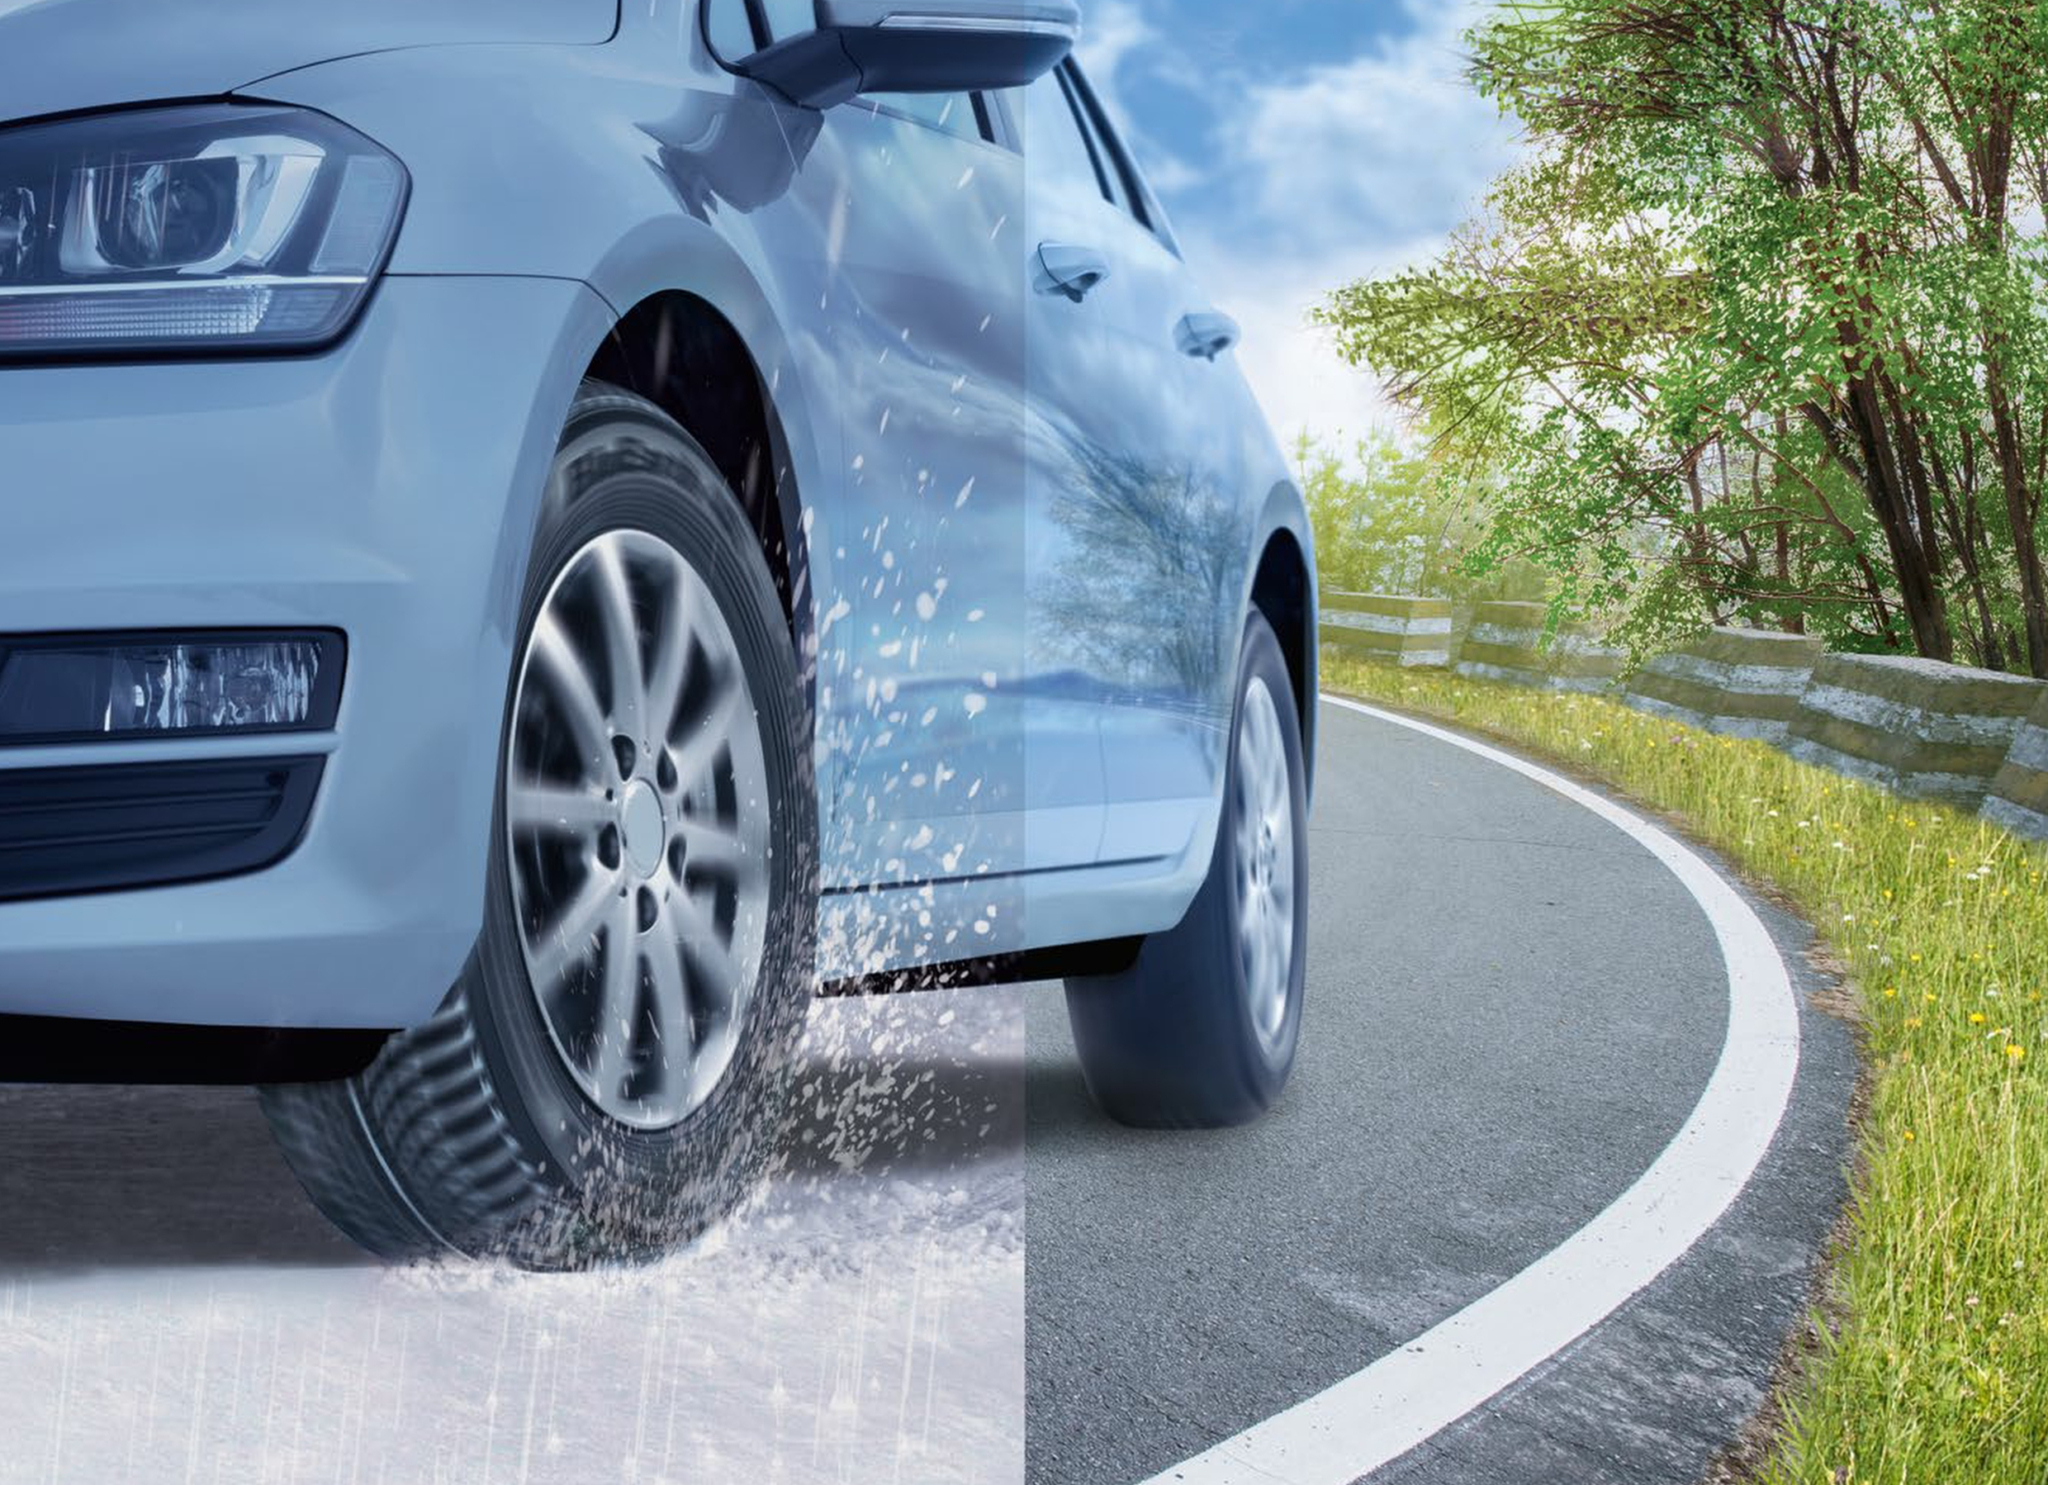 All-season tyre growth, especially for premium brands – GfK